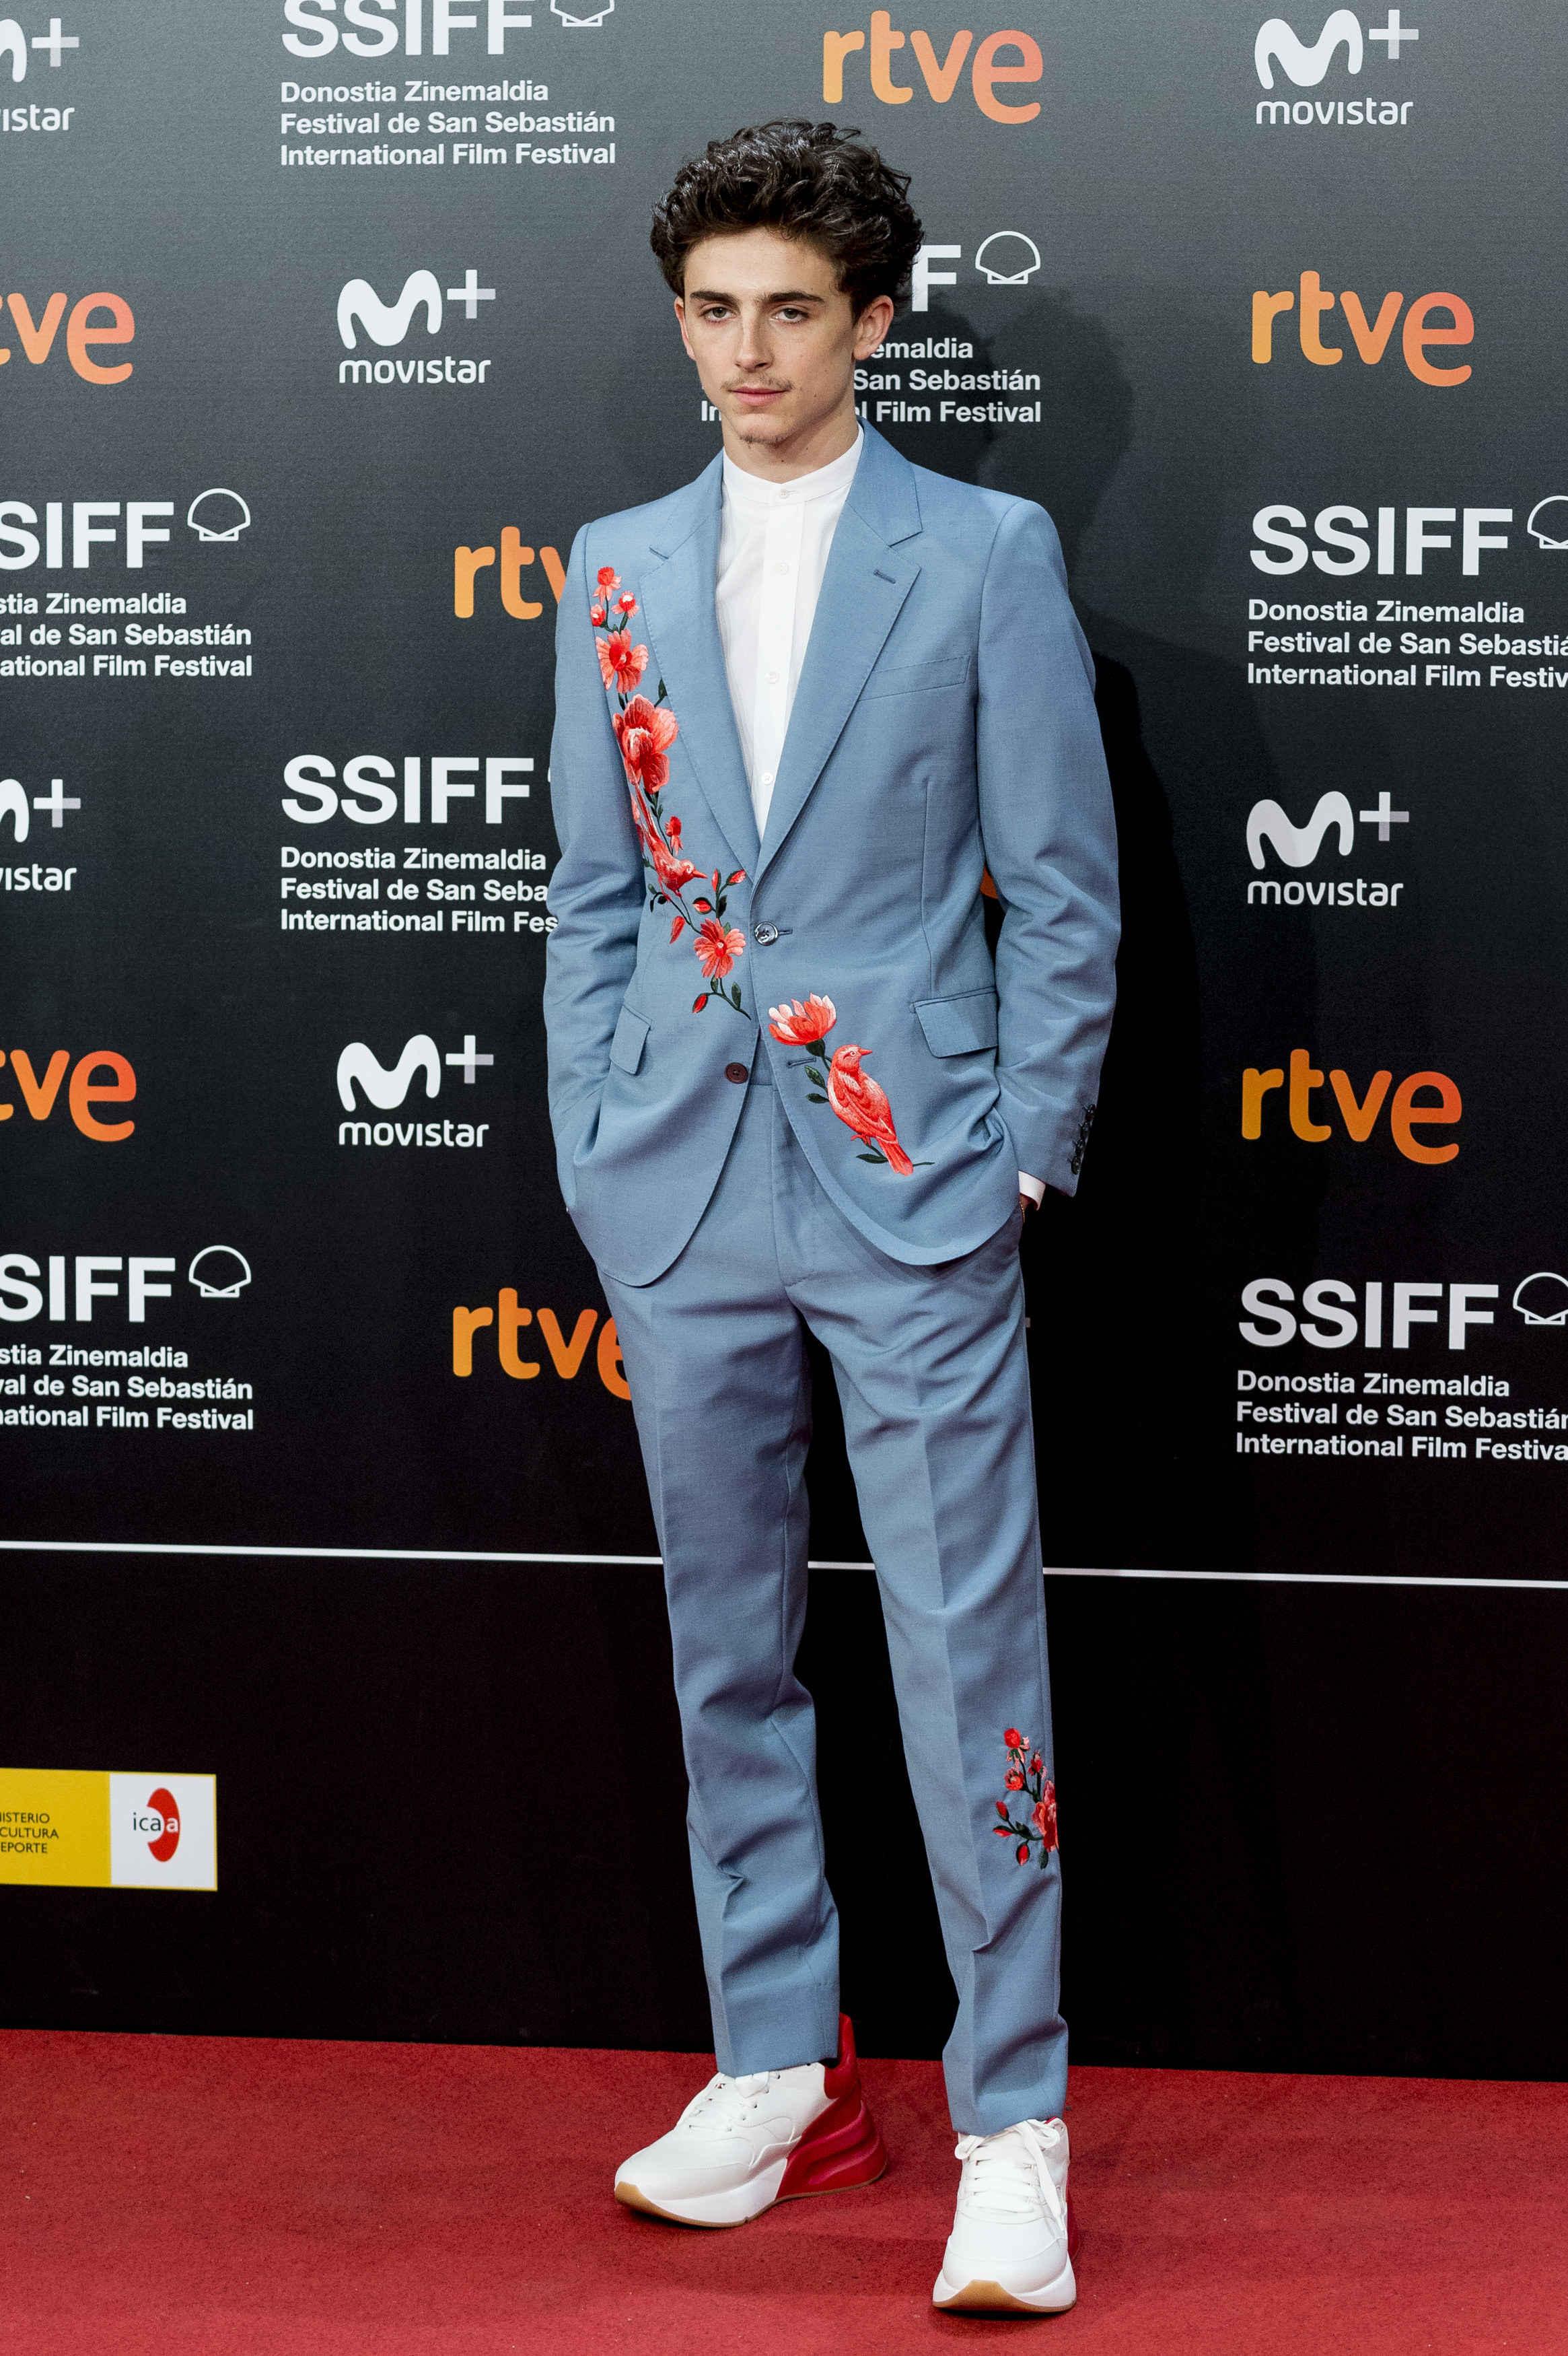 Timothée wears a light blue suit with embroidered red flowers across the chest